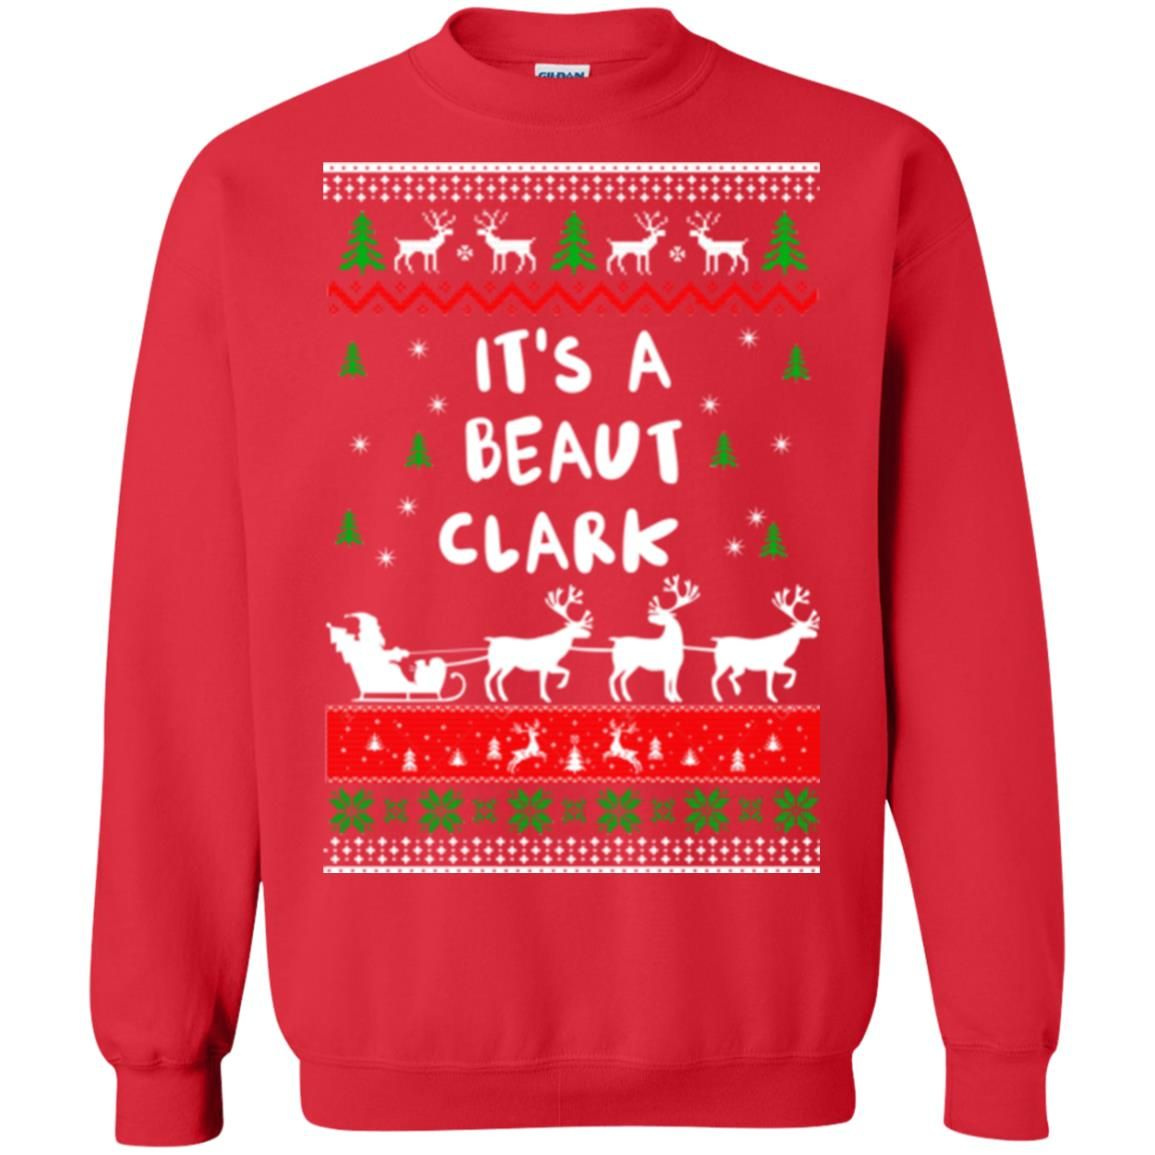 image 1785 - Griswold Sweatshirt It's-a Beaut Clark ugly sweater, hoodie